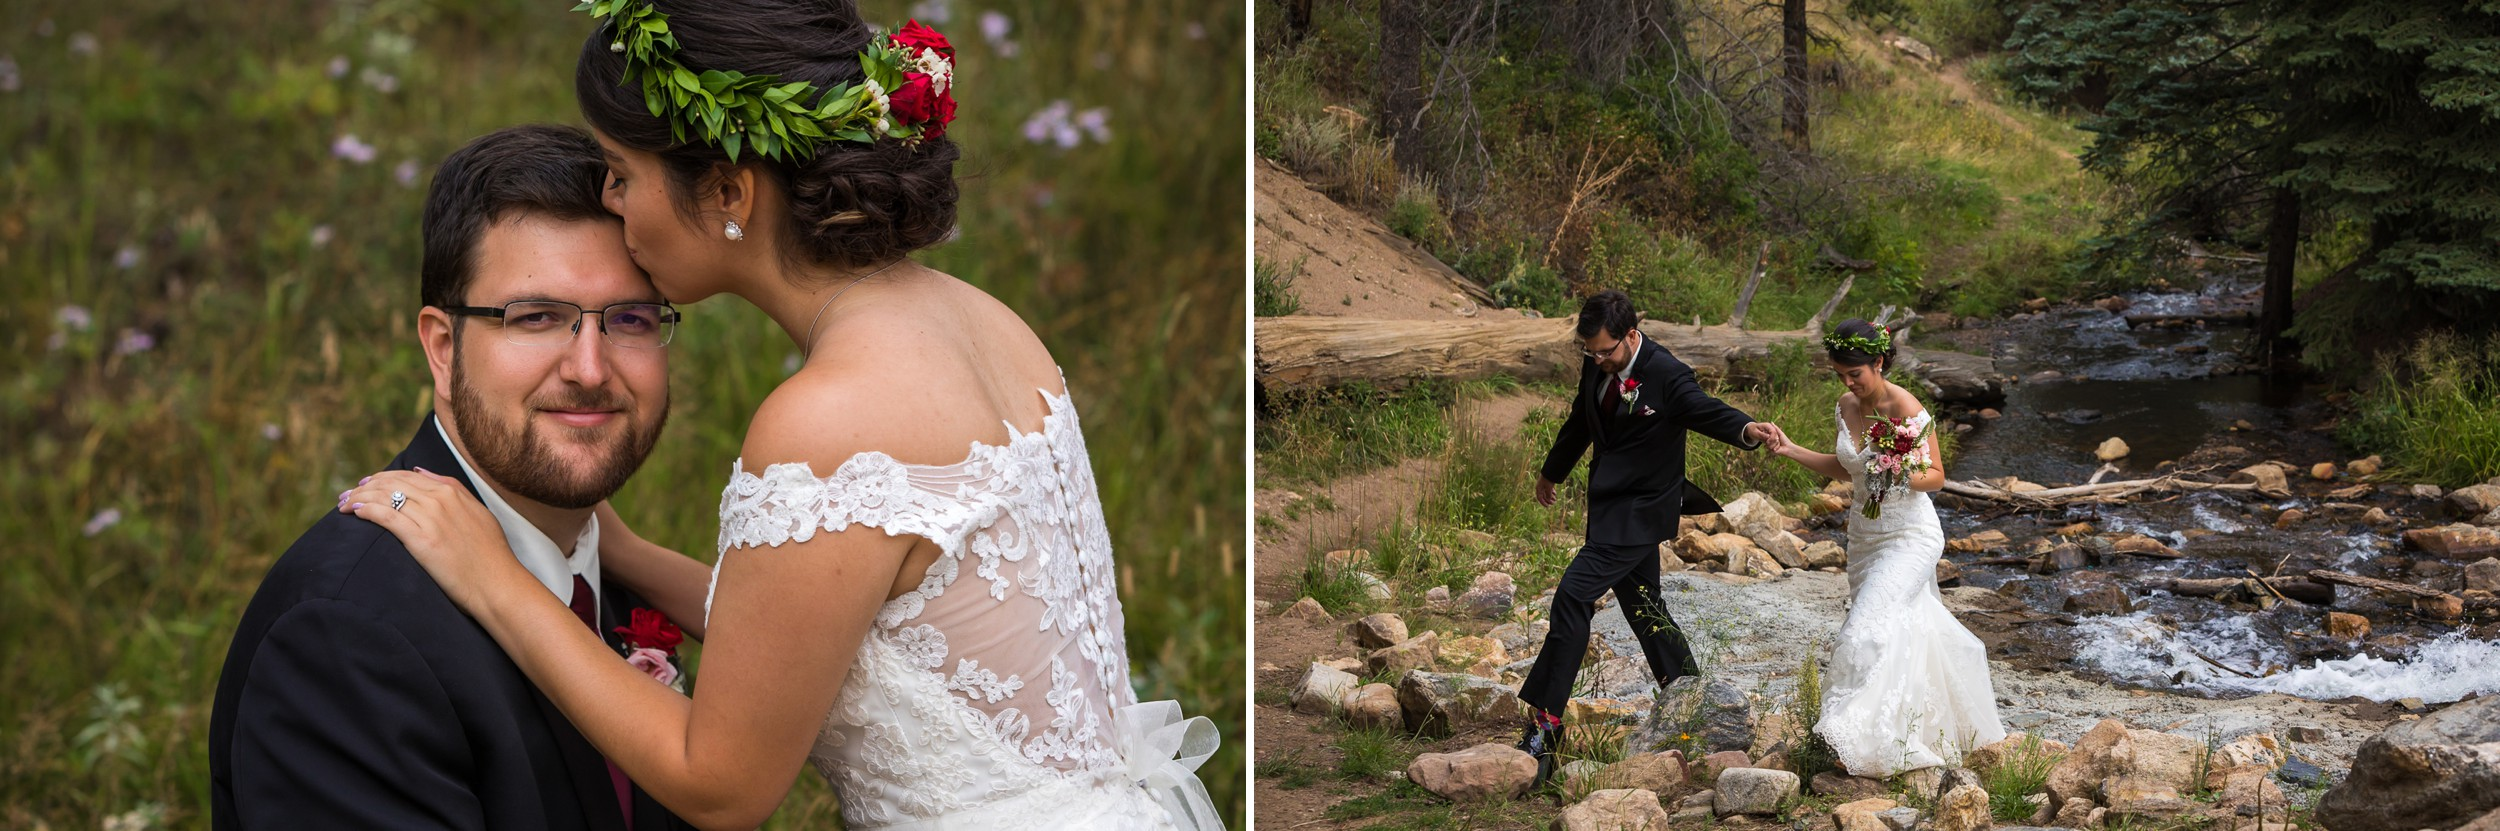 YMCA_of_the_Rockies_Estes_Park_Elopement_Emanuel_Kristopher_Lindsay_Photography 11.jpg